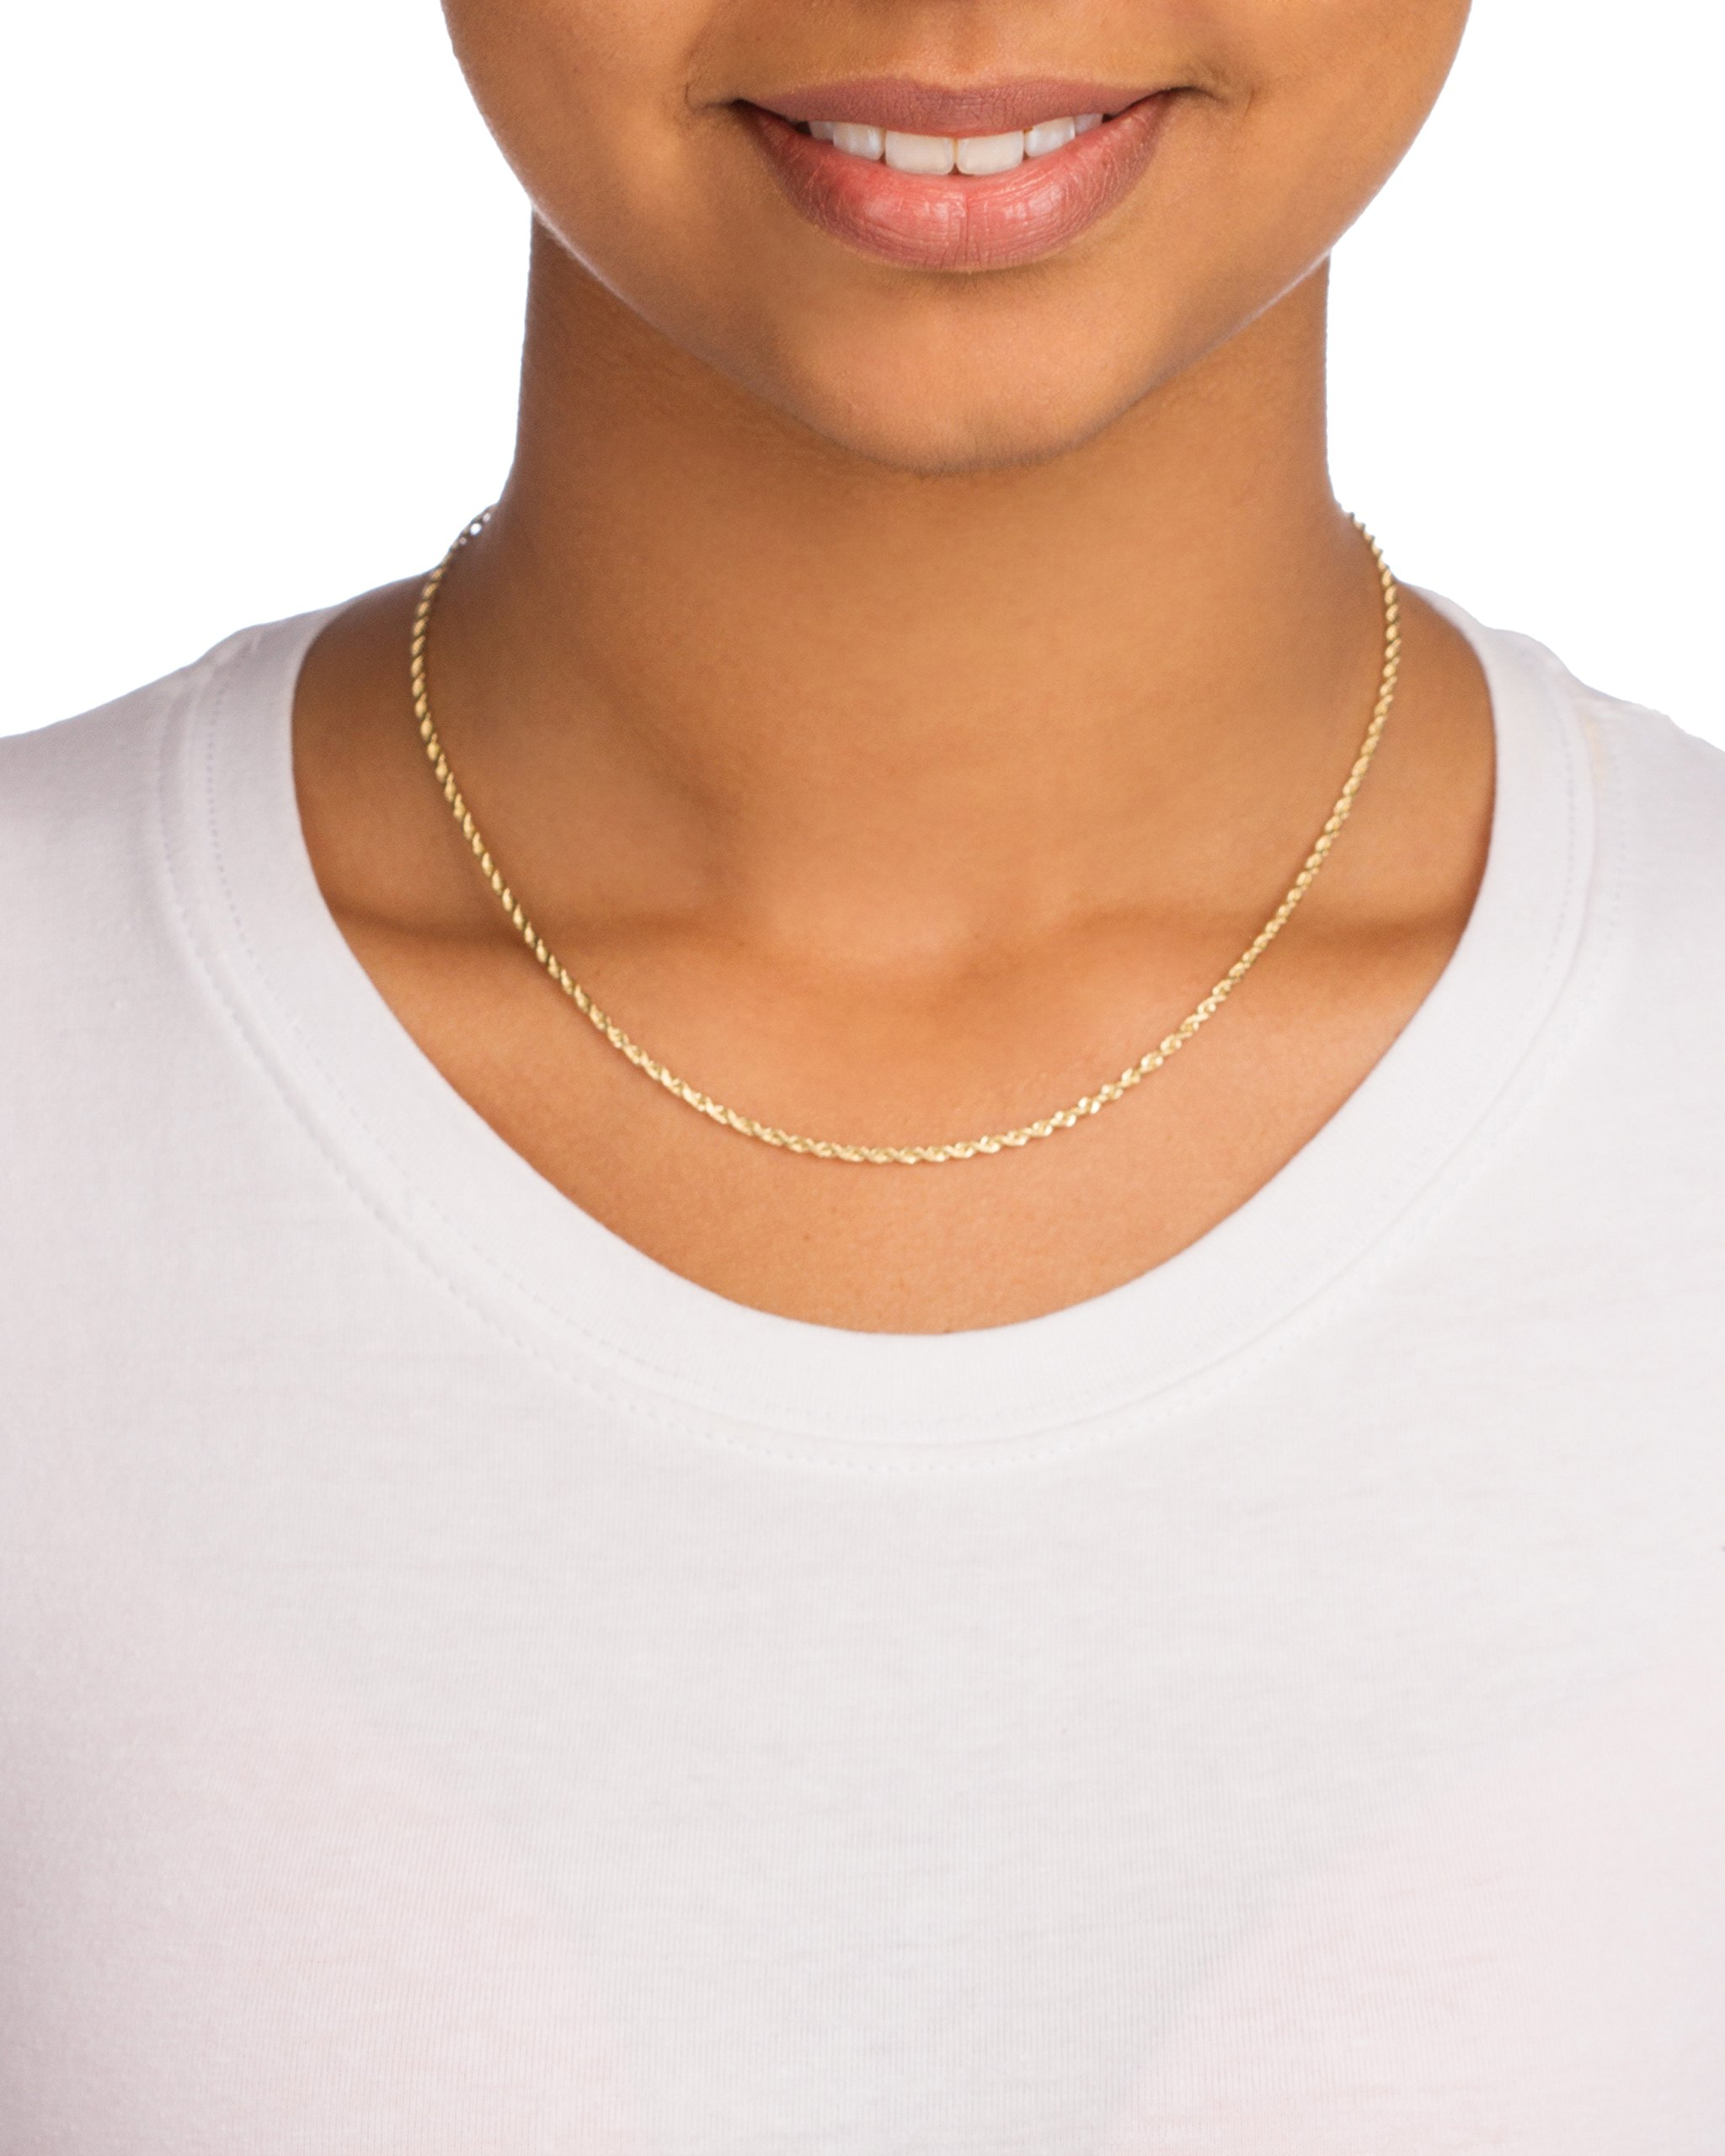 10K Yellow Gold 2mm D-cut Rope Chain Necklace - 16'' 18'' & 20'' Available (16 I.. by JOTW (Image #4)